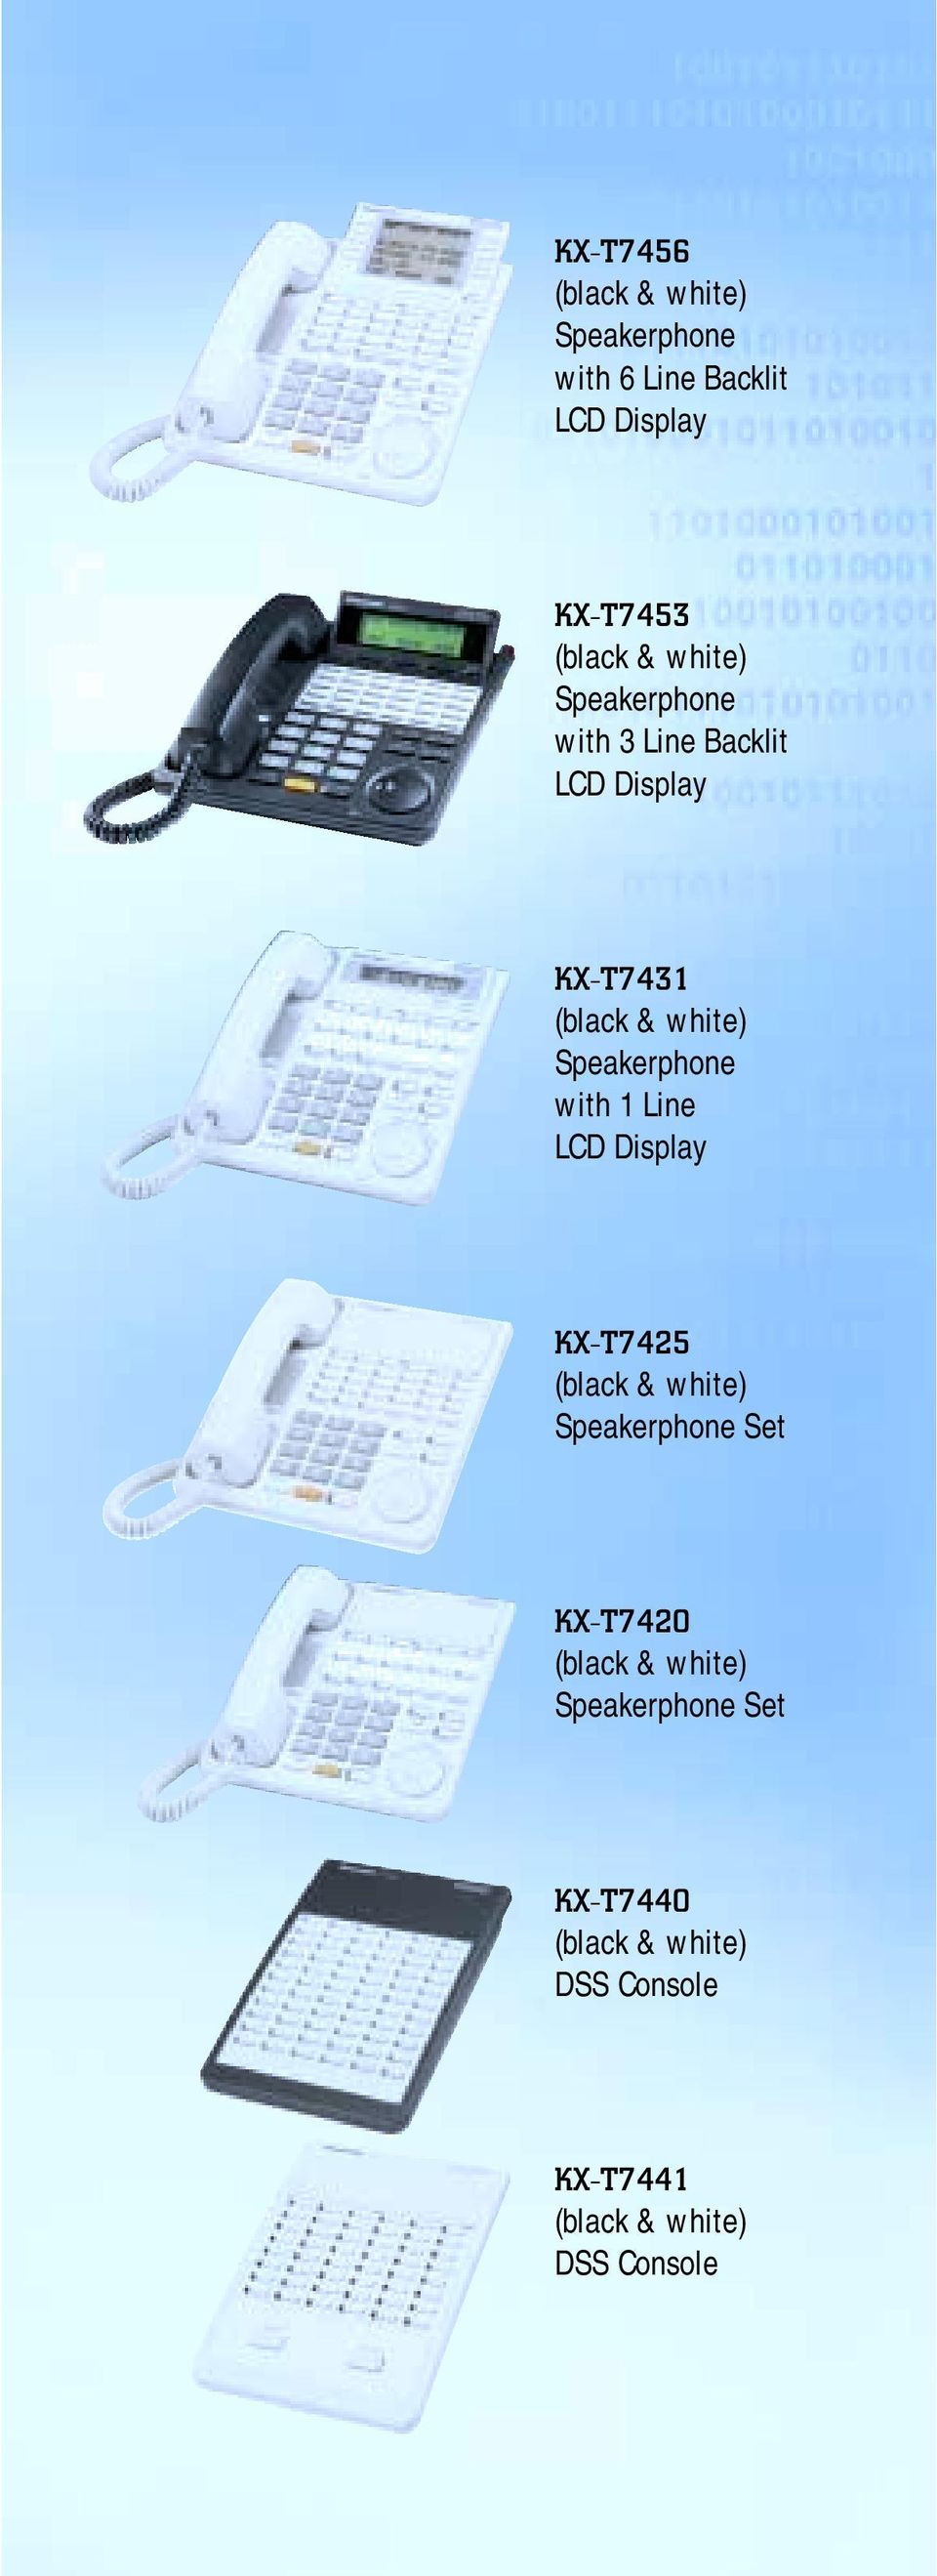 Speakerphone with 1 Line KX-T7425 Speakerphone Set